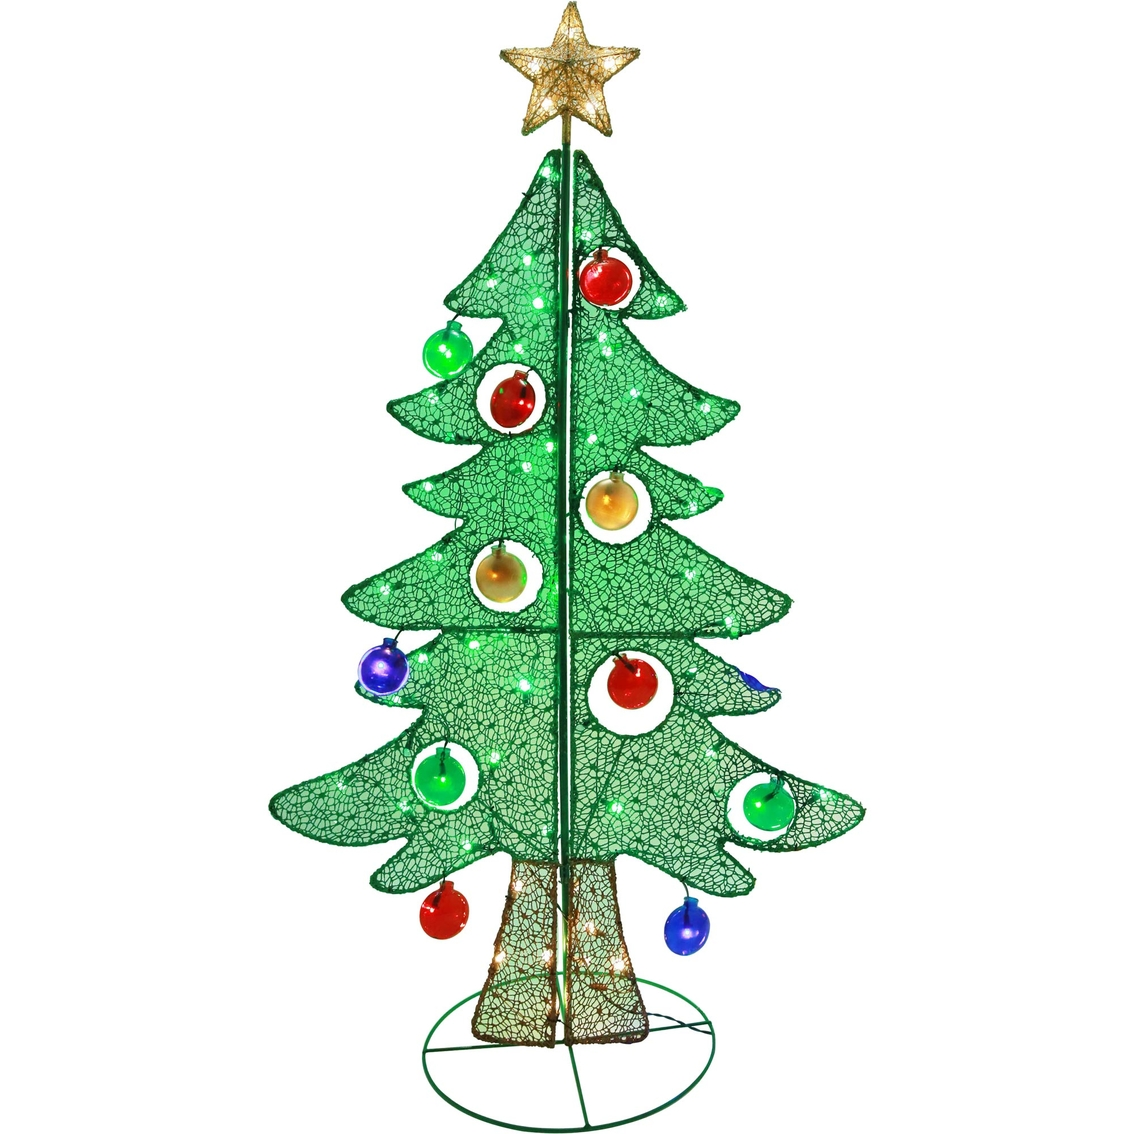 Costco Online Christmas Trees: Puleo 60 In. Christmas Tree With Lights And Ornaments